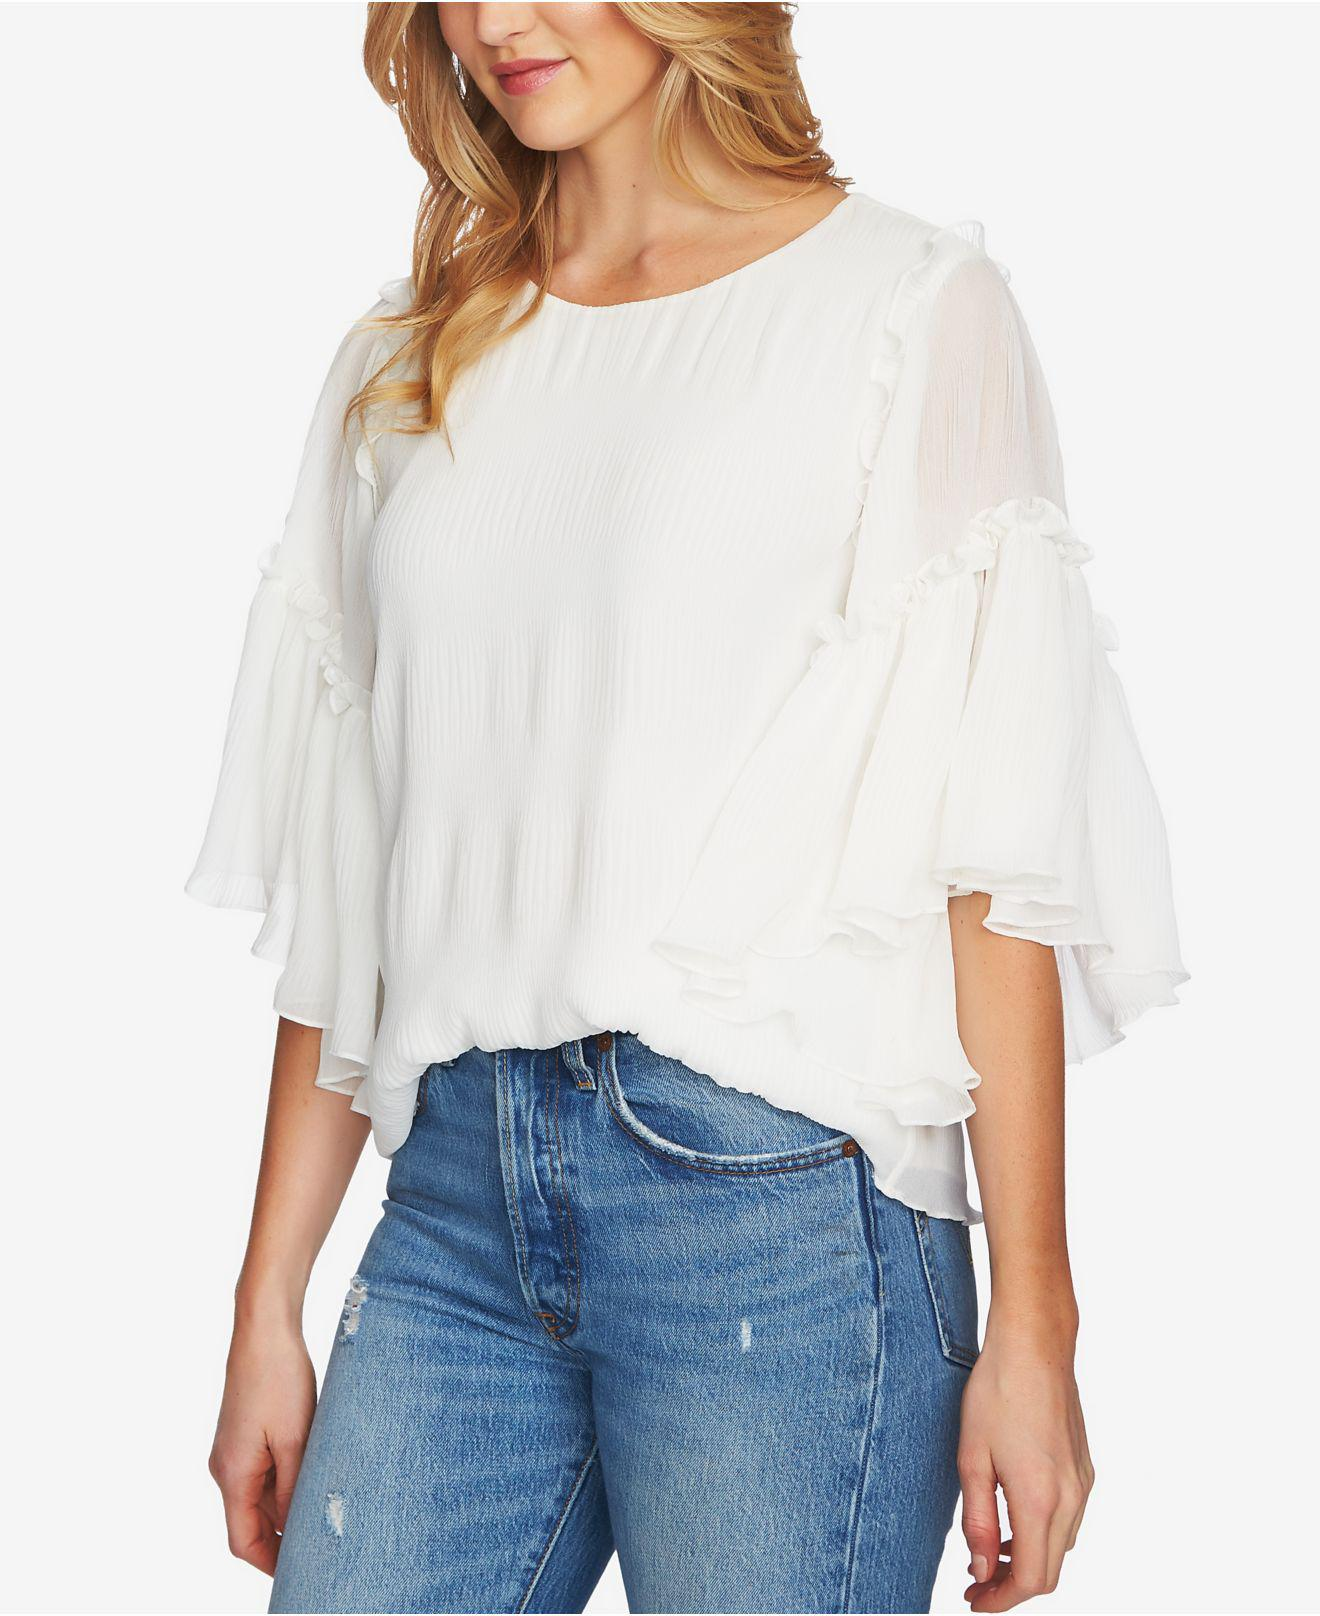 348ed5ce855 Lyst - 1.STATE Ruffled Asymmetrical-sleeve Top in White